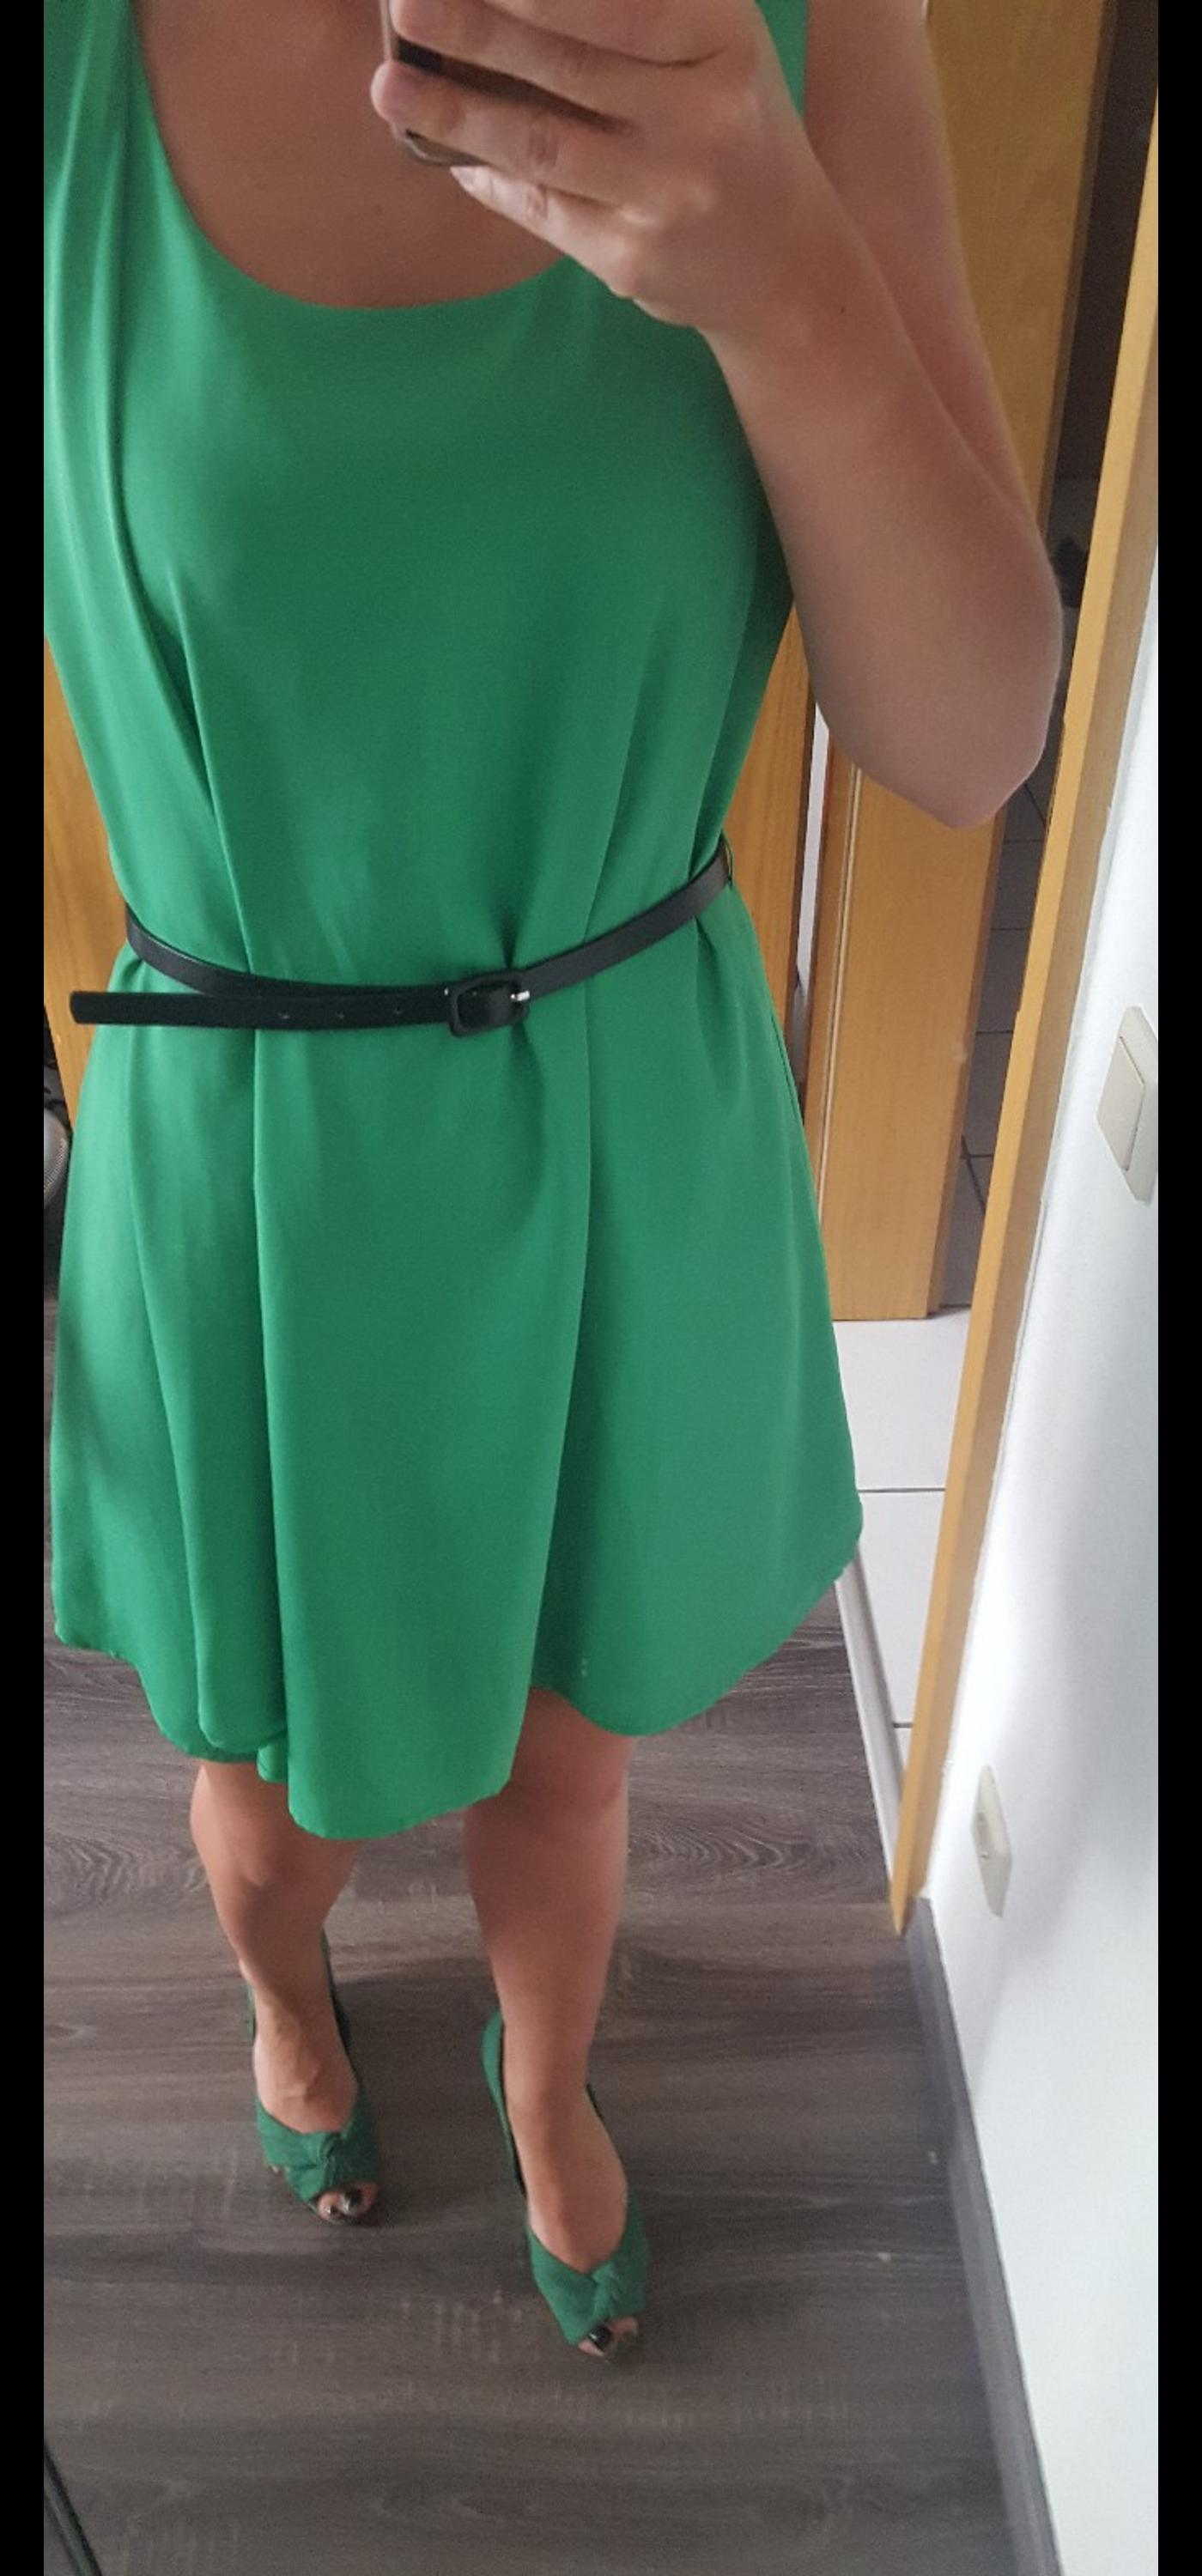 kleid / schuhe / armband / outfit in 58099 hagen for €40.00